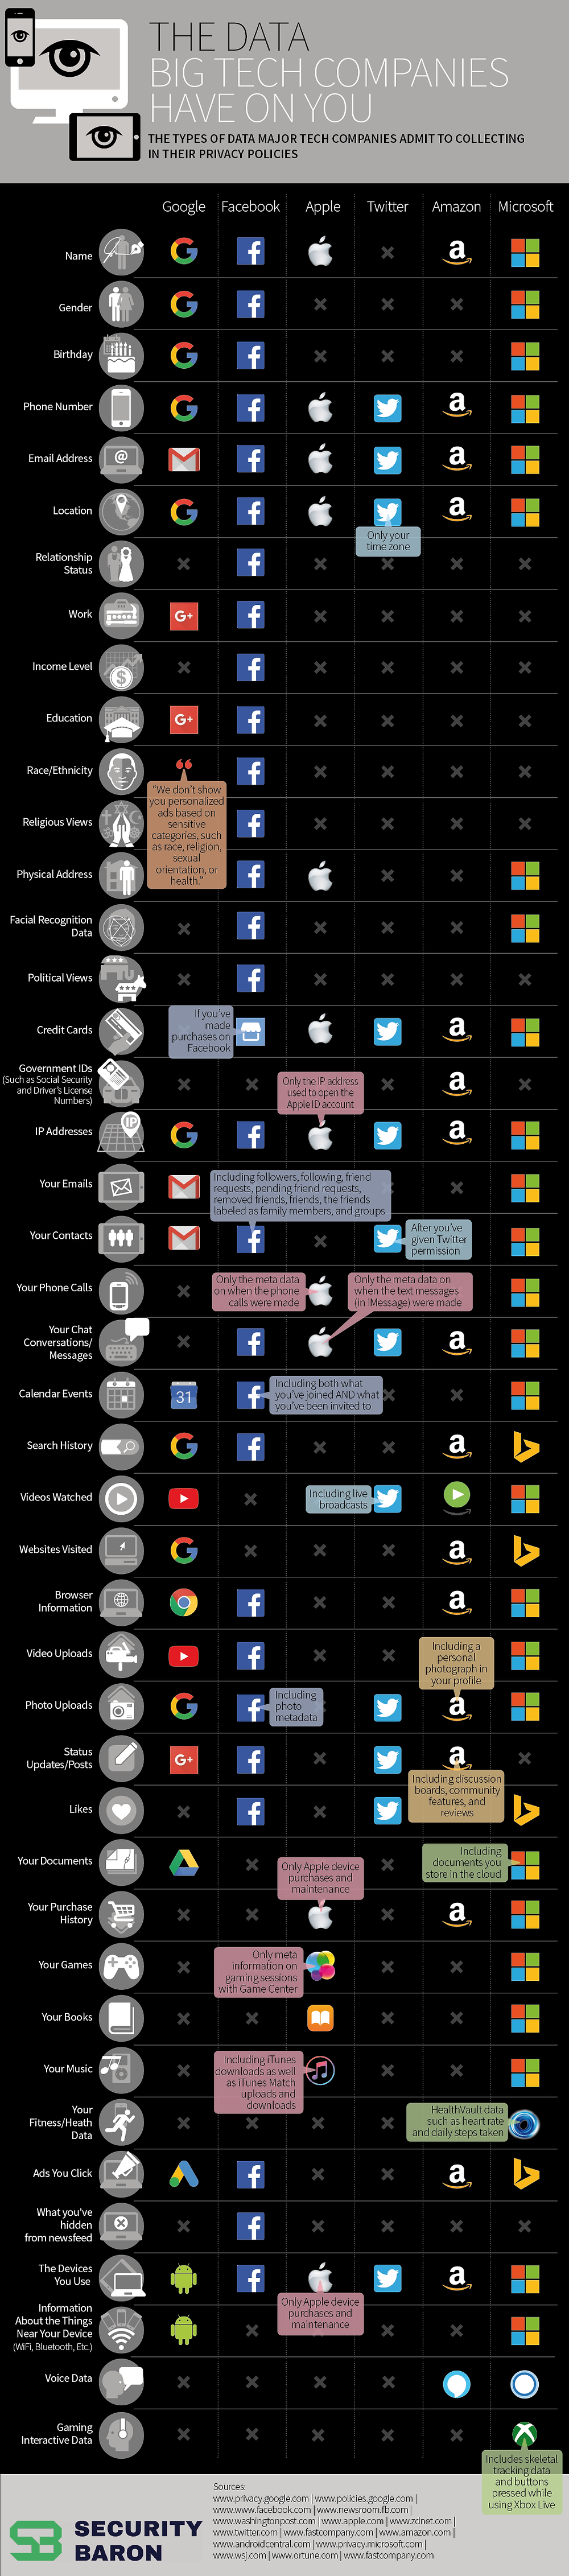 The Data Big Tech Companies Have On You